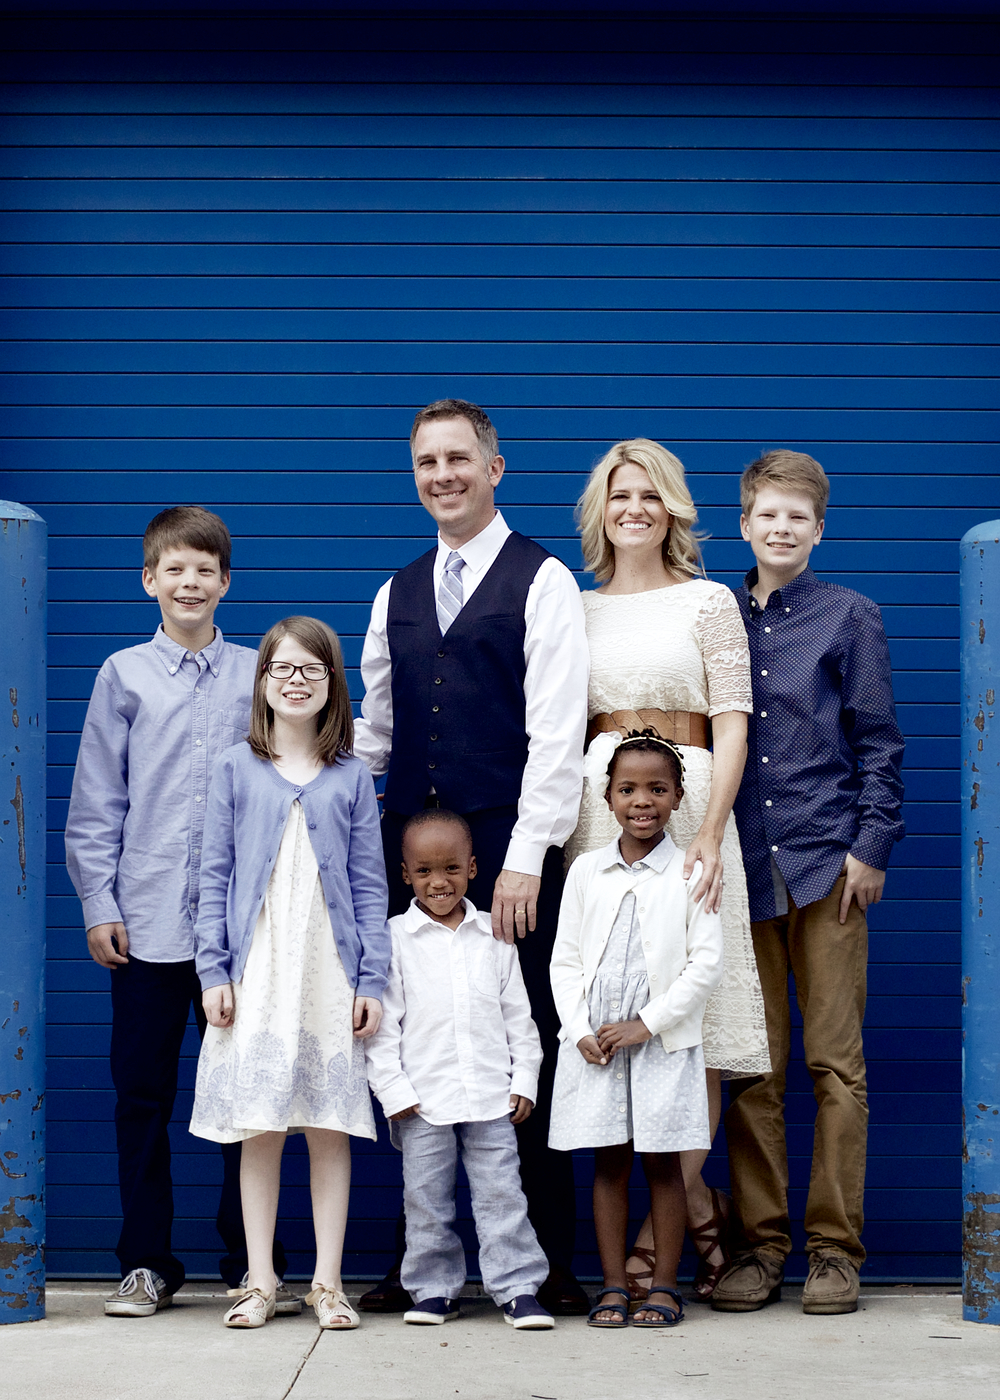 Brent Garrard, Karla Garrard, Acuity Photography, Patrick Biestman, Rachel Biestman, family photographer in augusta ga, family photographer, in evans ga, family photographer in Augusta, Augusta ga family photography, augusta ga family photography, evans ga family photography,